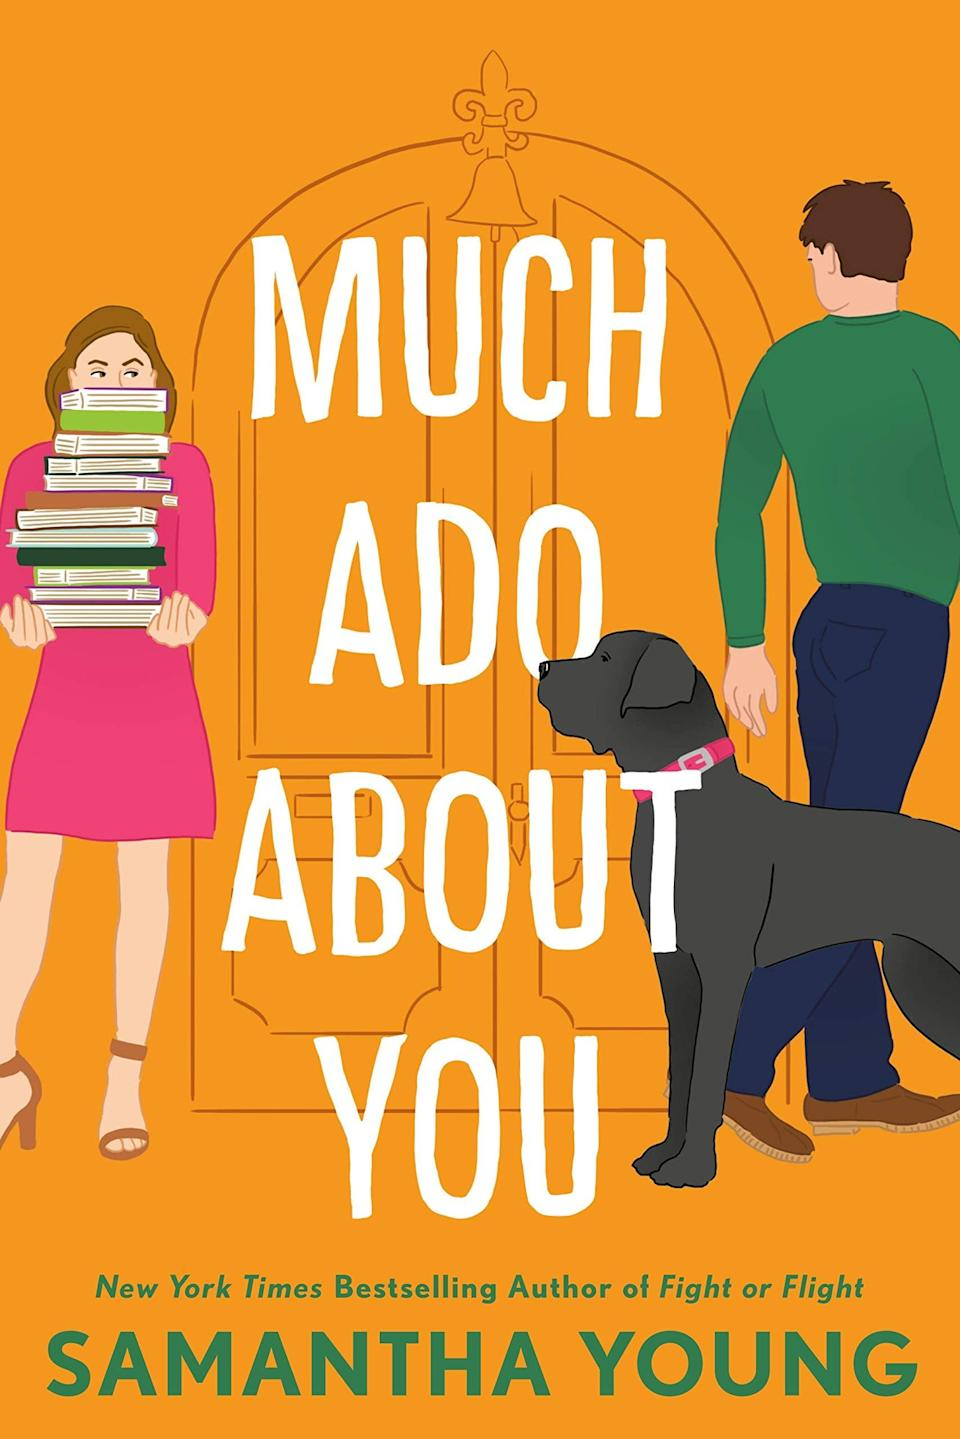 <p>Bestselling author Samantha Young's latest rom-com, <span><strong>Much Ado About You</strong></span>, is as cozy as a well-worn blanket. Evangeline Starling needs a break from her boring life in Chicago, and a vacation in England that includes a temporary position running a bookshop sounds like a dream come true. And it is - at least until a sexy local catches her eye and complicates her perfect getaway with matters of the heart.</p> <p><em>Out Feb. 2</em></p>